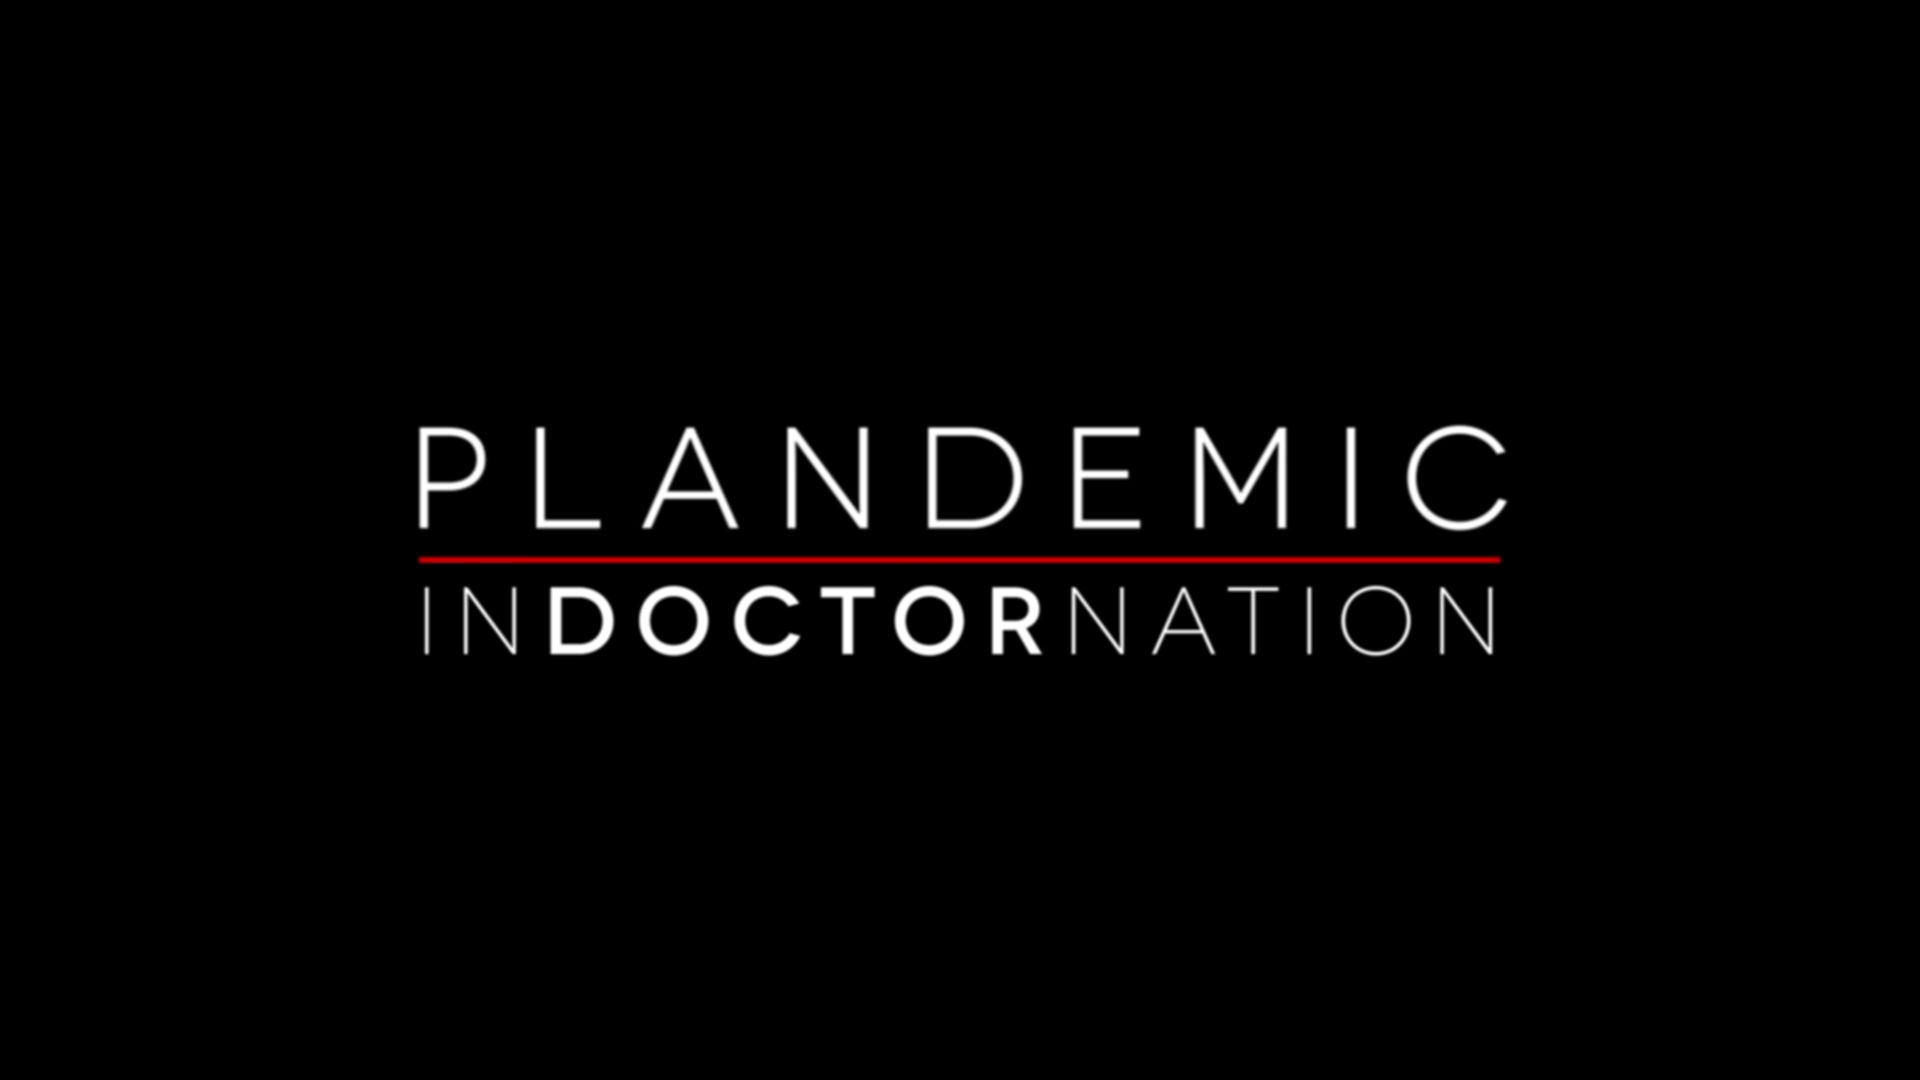 Image: Plandemic II: inDOCTORnation film released – here are the most damning outtakes that expose the criminal fraud of Fauci, the WHO and the CDC